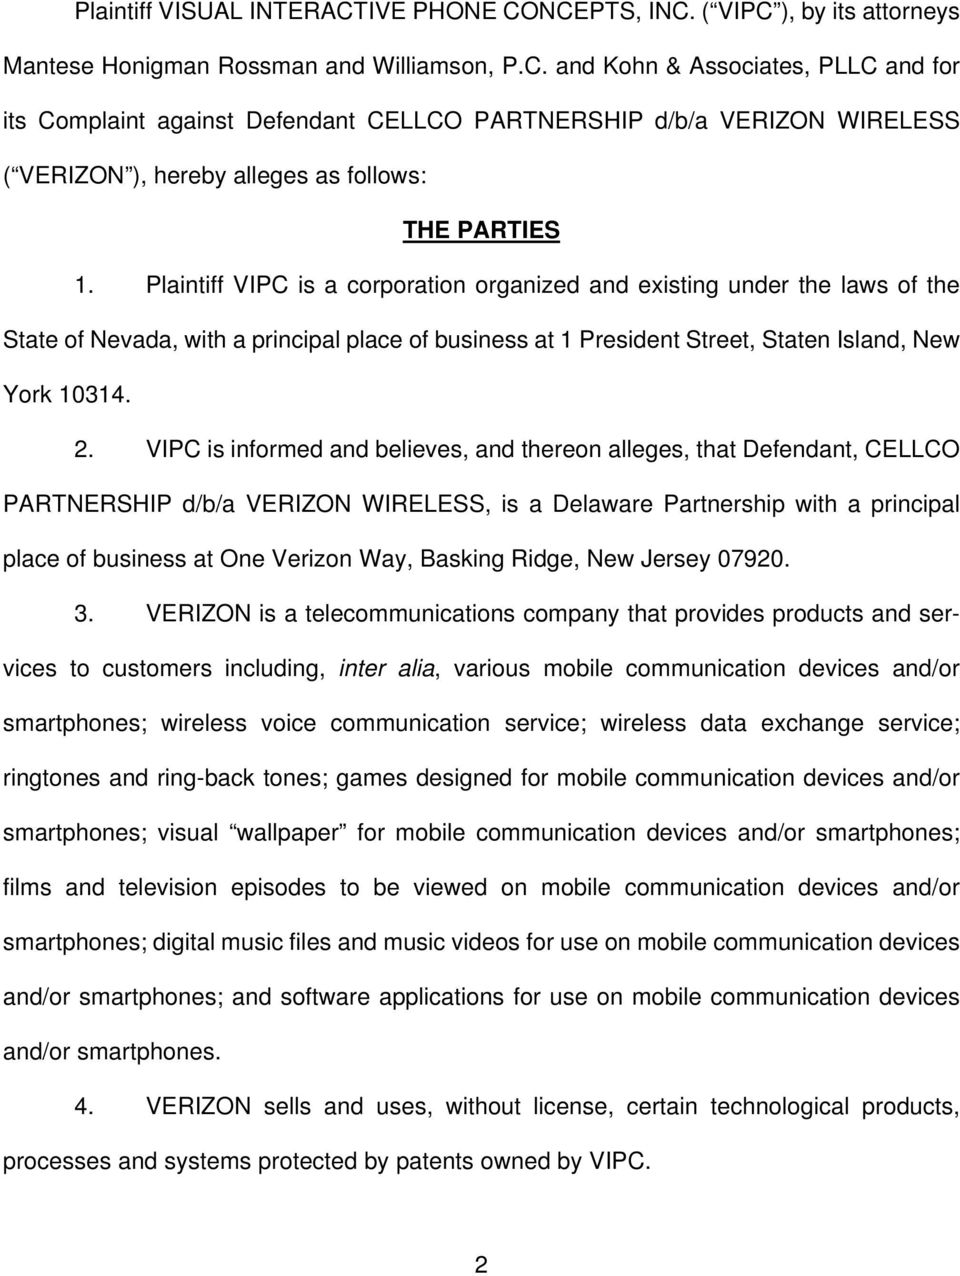 VIPC is informed and believes, and thereon alleges, that Defendant, CELLCO PARTNERSHIP d/b/a VERIZON WIRELESS, is a Delaware Partnership with a principal place of business at One Verizon Way, Basking